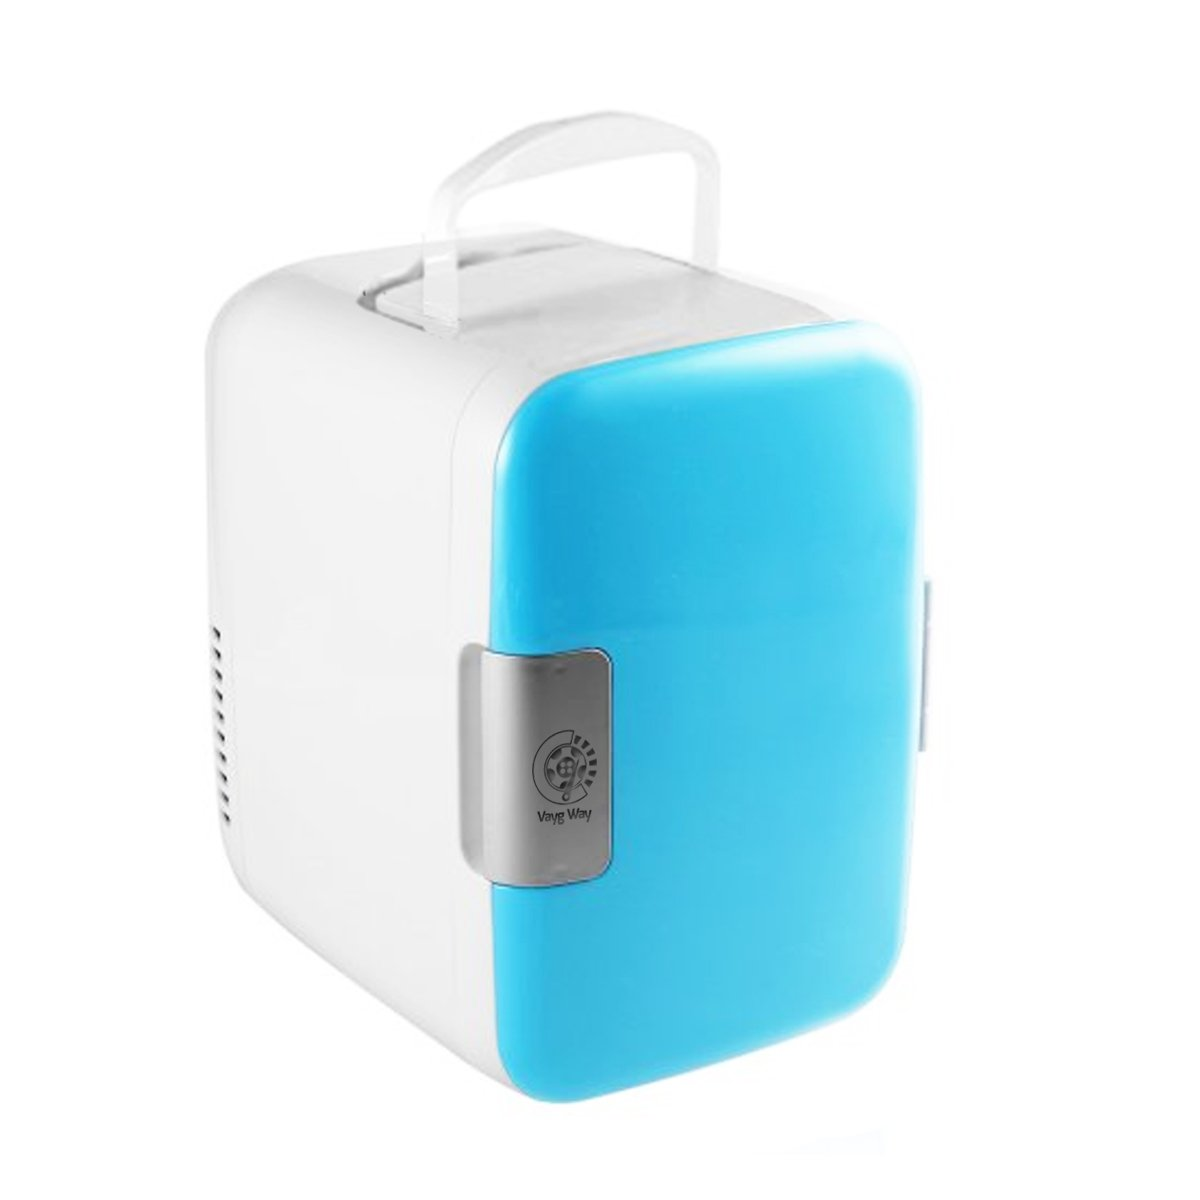 VaygWay Mini Fridge Portable Cooler-Electric Cooler/Warmer AC/DC Thermoelectric System- Universal Refrigerator Car Travel Home-Work Desk Baby Bottle Medicine